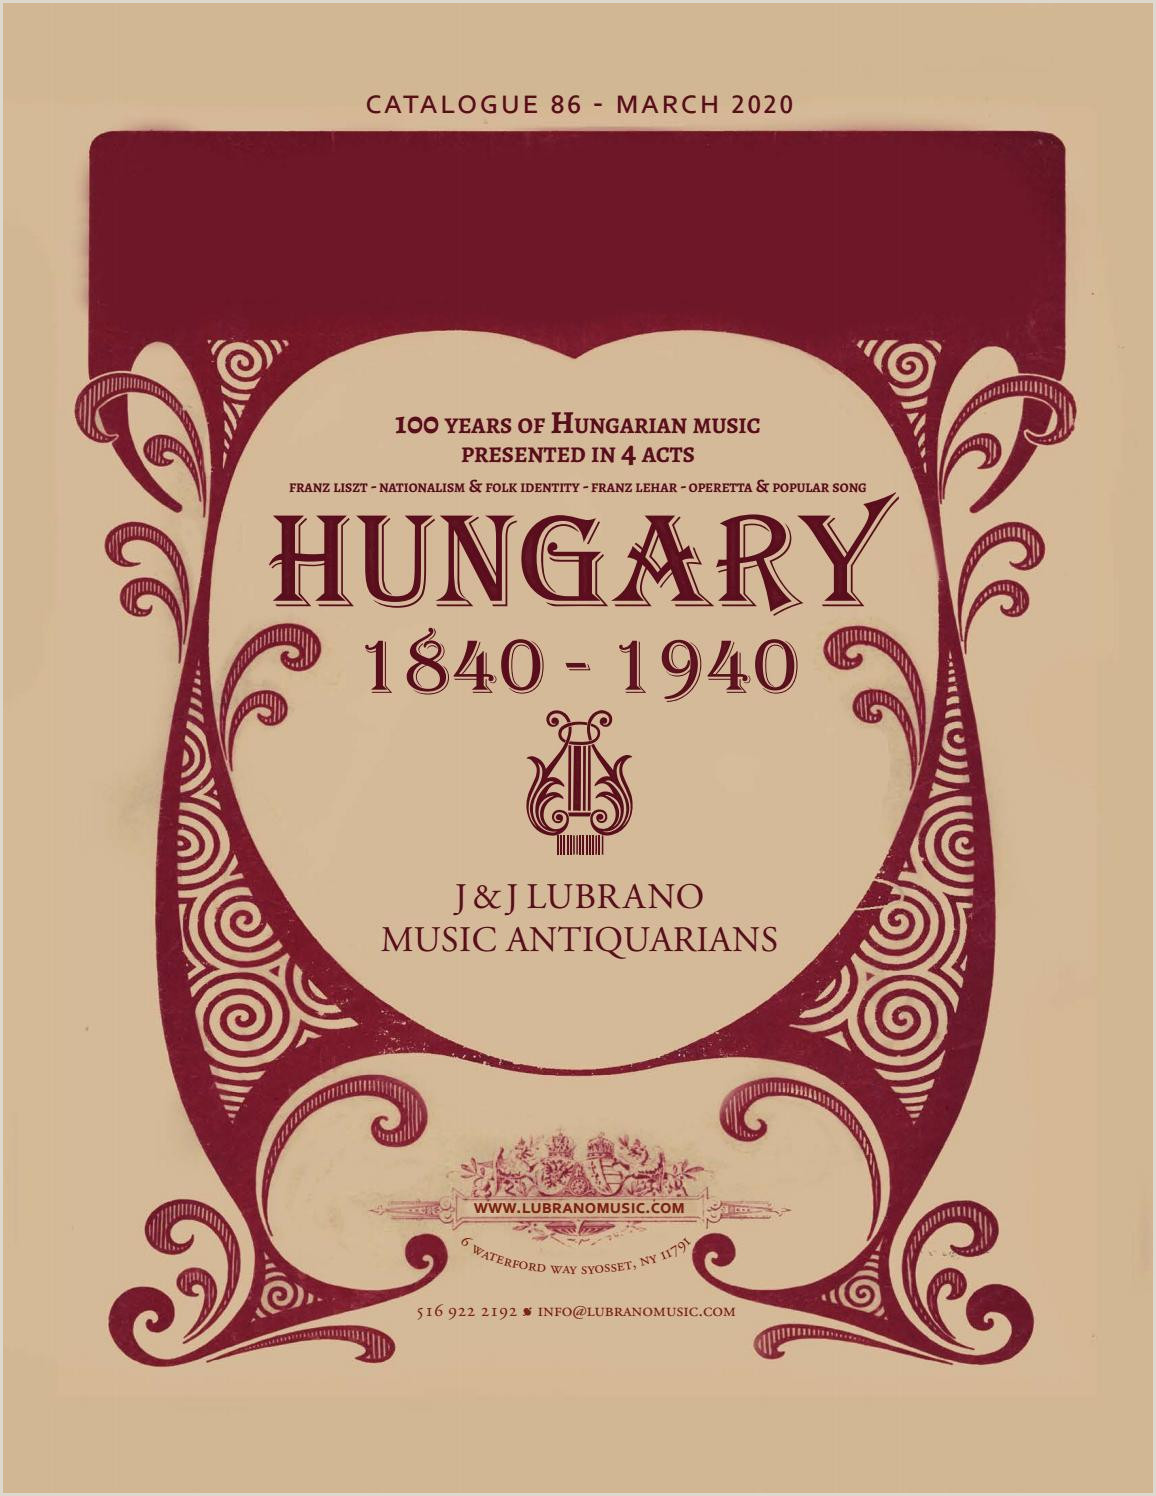 Unique Business Cards Raised Embossed Logo 100 Years Of Hungarian Music By J & J Lubrano Music